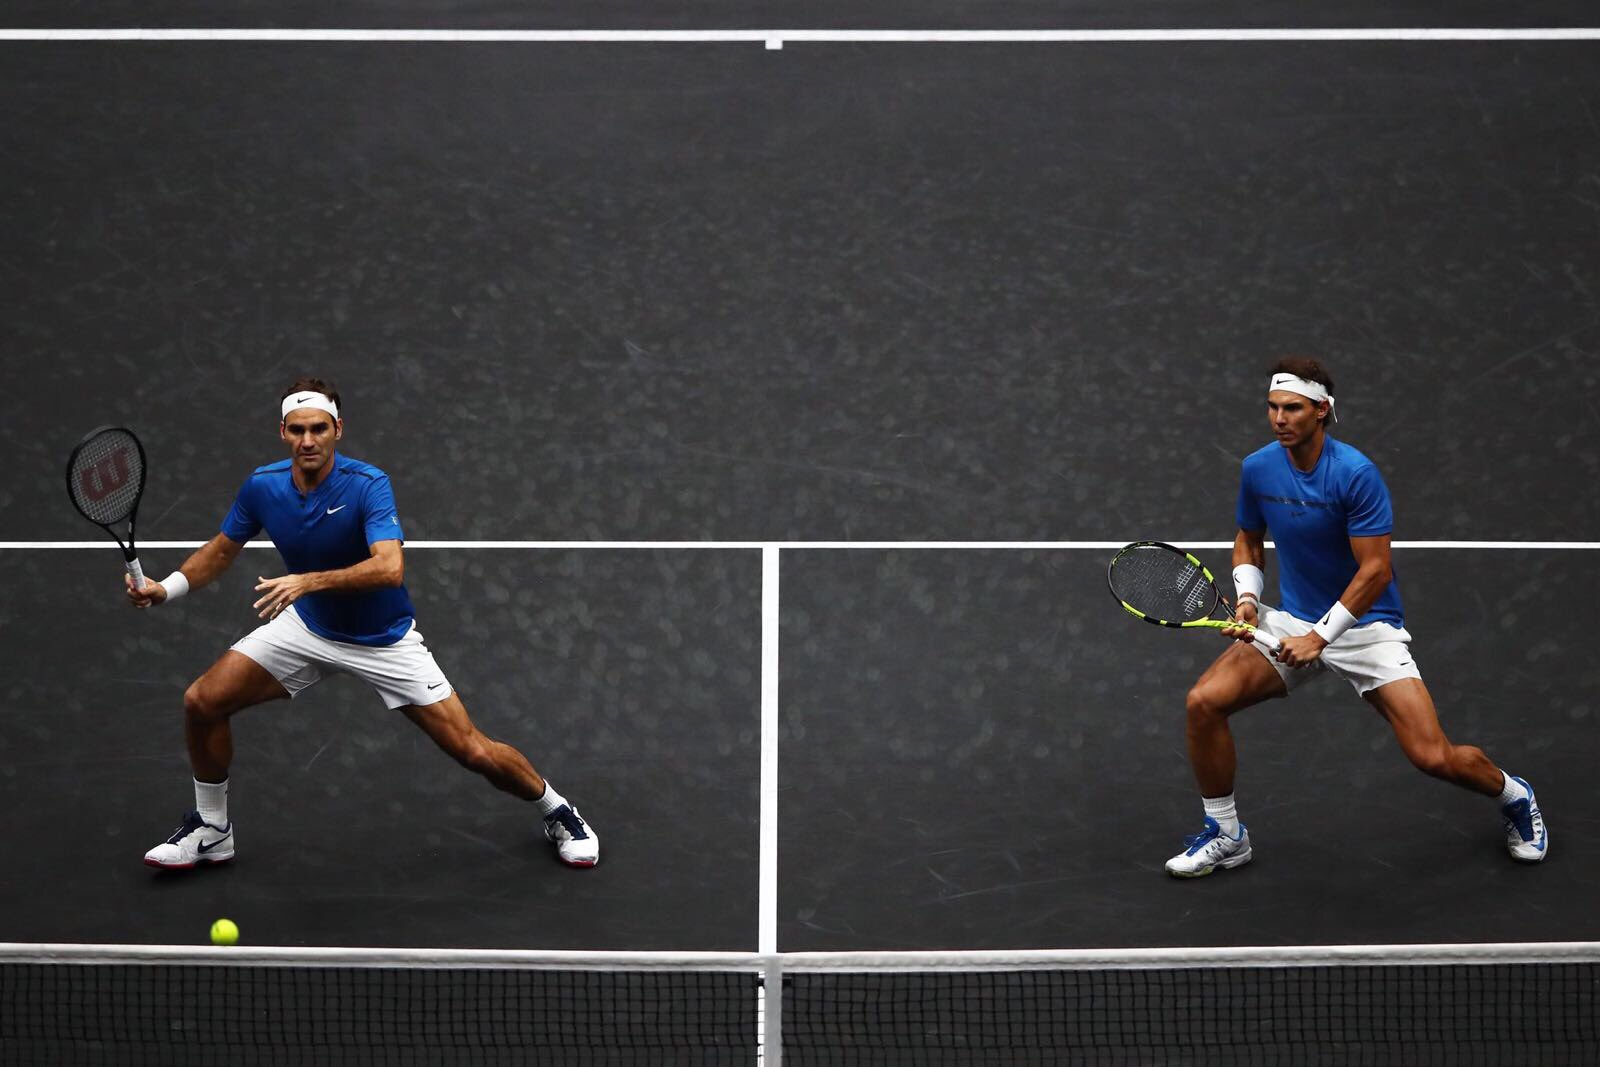 I could get used to playing on the same side of the net as @RafaelNadal ゚メᆰ゚マᄏ゚ムパマᄏ゚ムᆵ¬タヘ¬ルツᄌマ゚ユᄎ゚マᄑ゚ホᆵ゚ヤᆬ https://t.co/BxNvbFdDrn